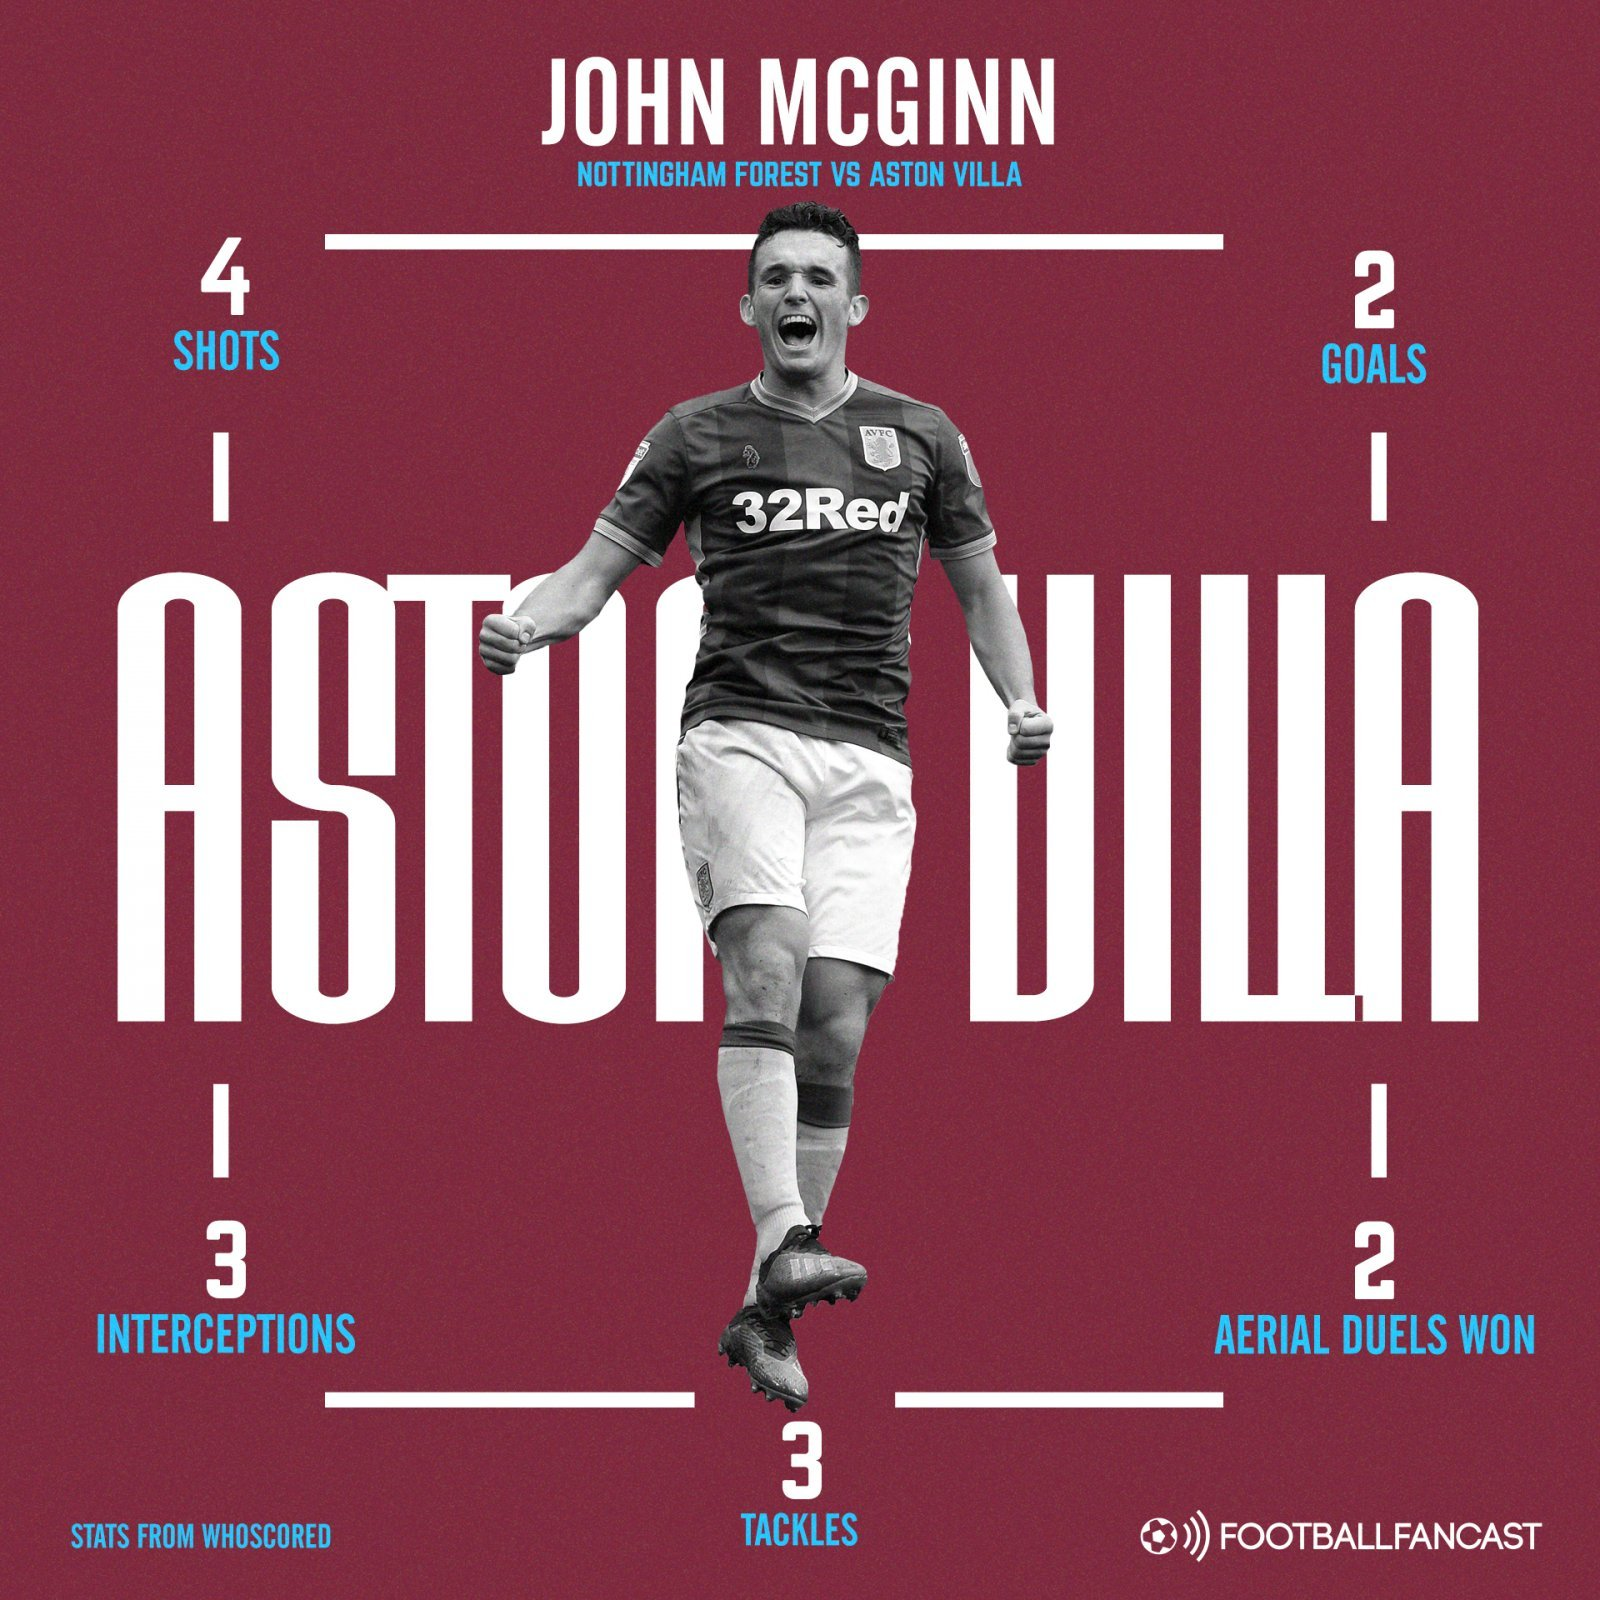 Aston Villa midfielder John McGinn's stats vs Nottingham Forest